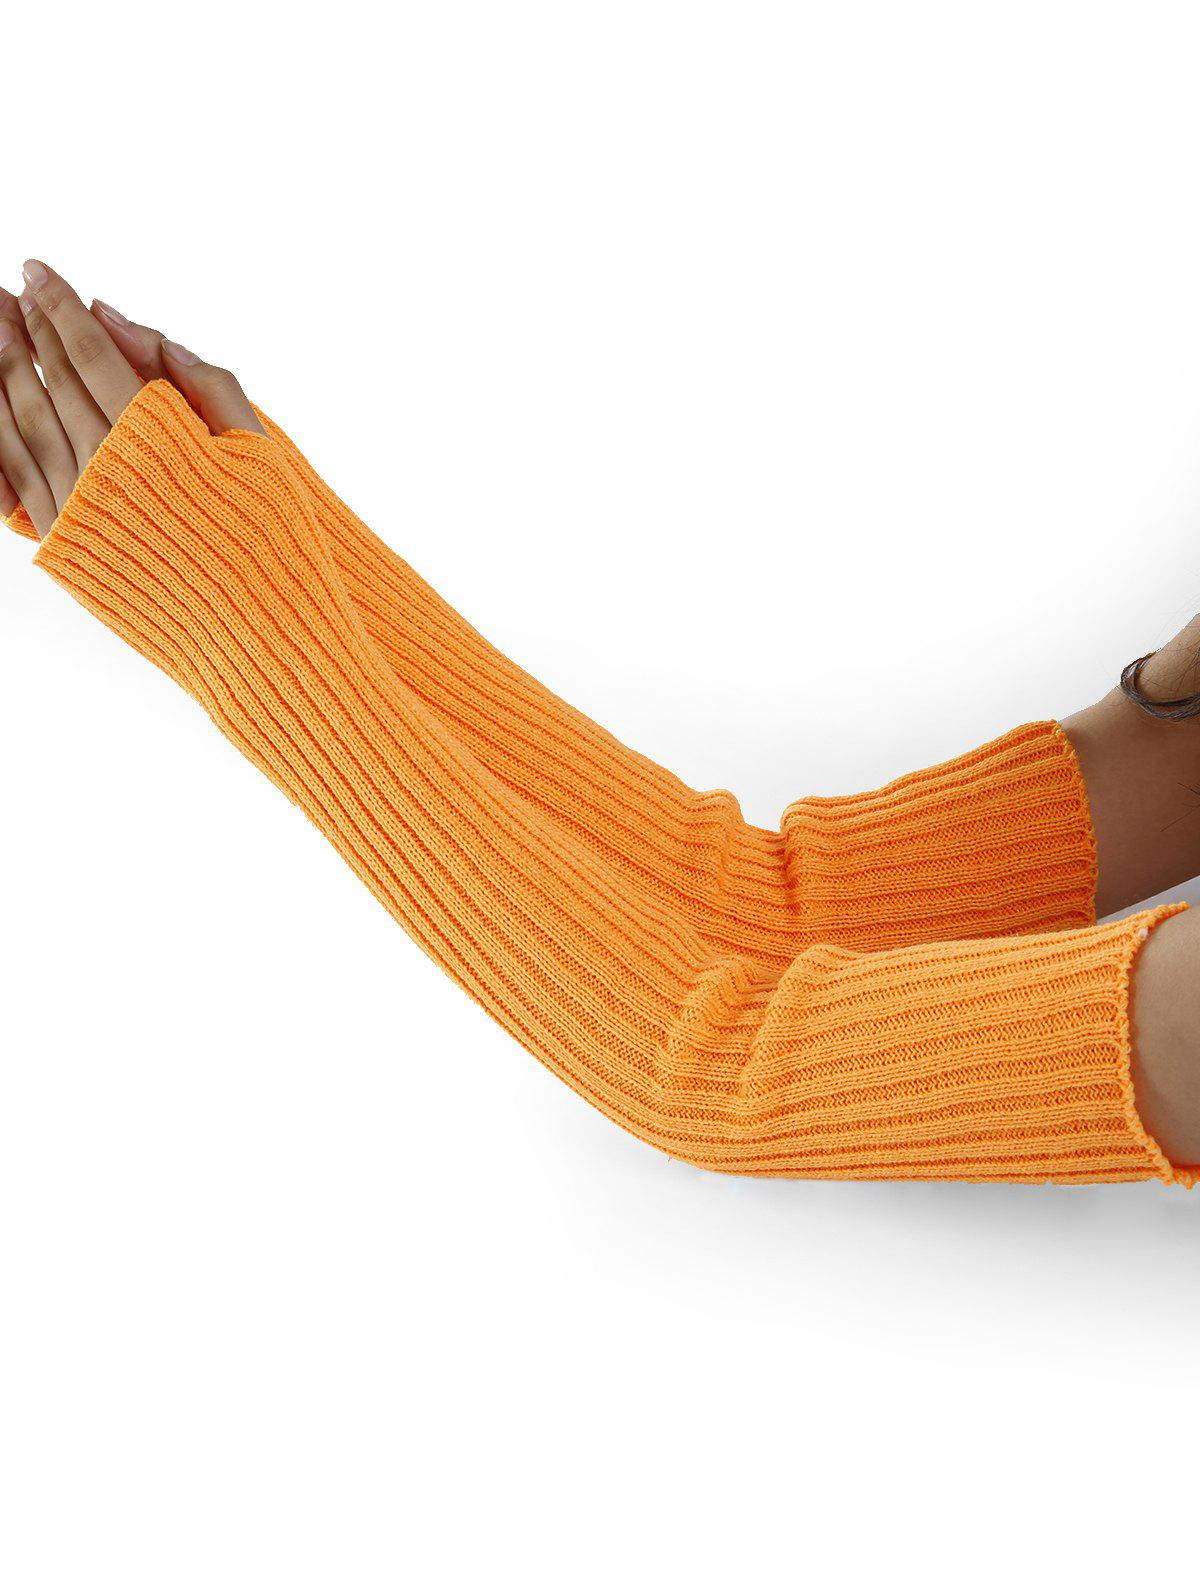 Unique Vertical Striped Pattern Crochet Knitted Arm Warmers